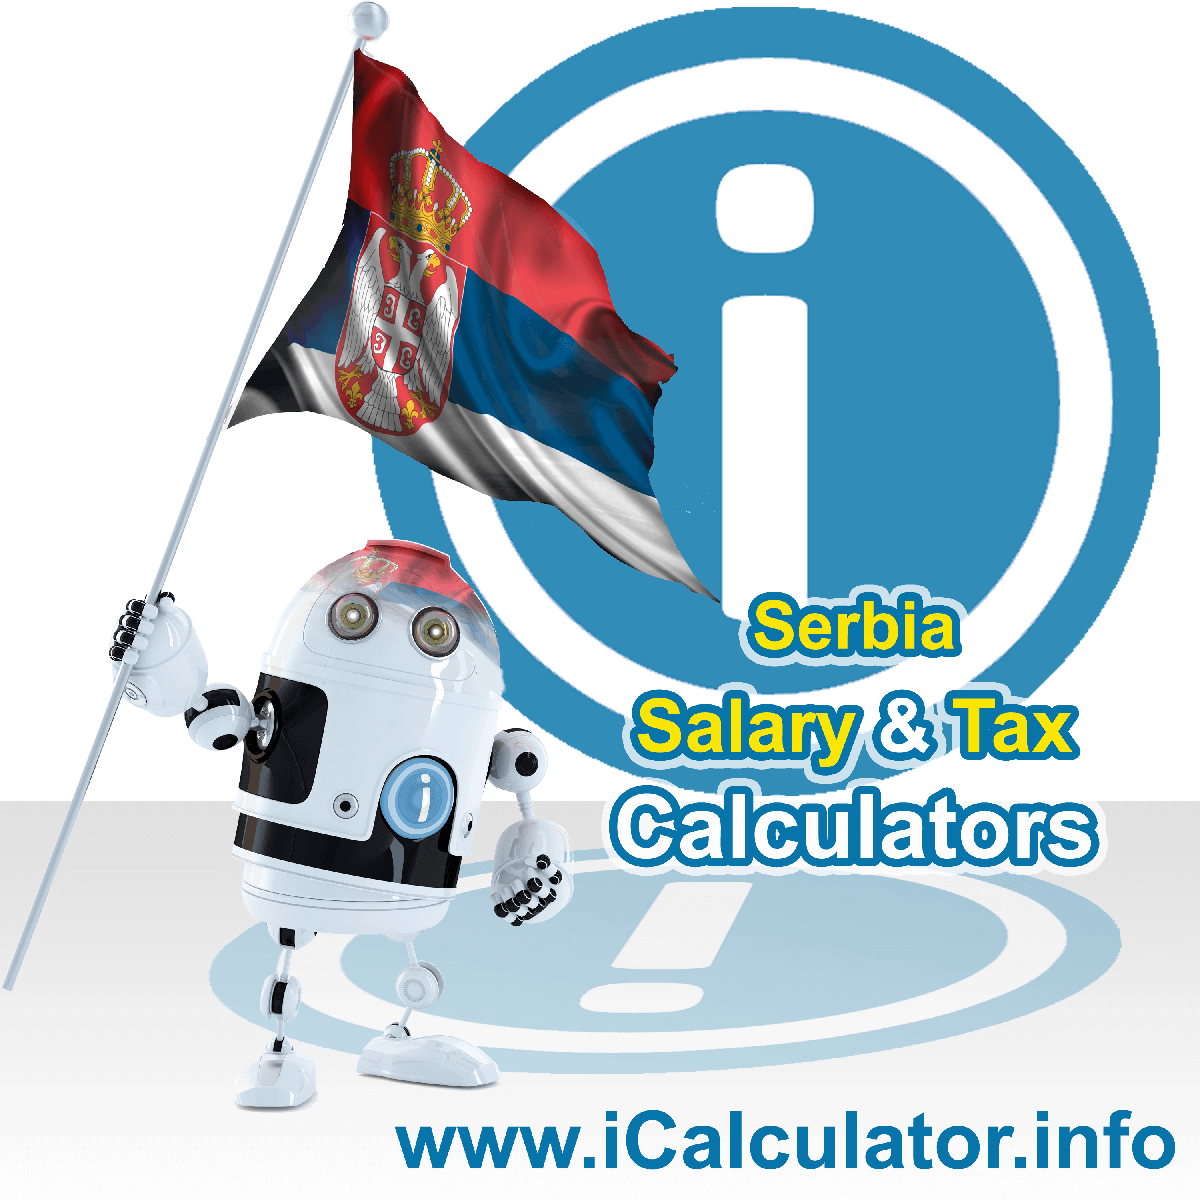 Serbia Wage Calculator. This image shows the Serbia flag and information relating to the tax formula for the Serbia Tax Calculator